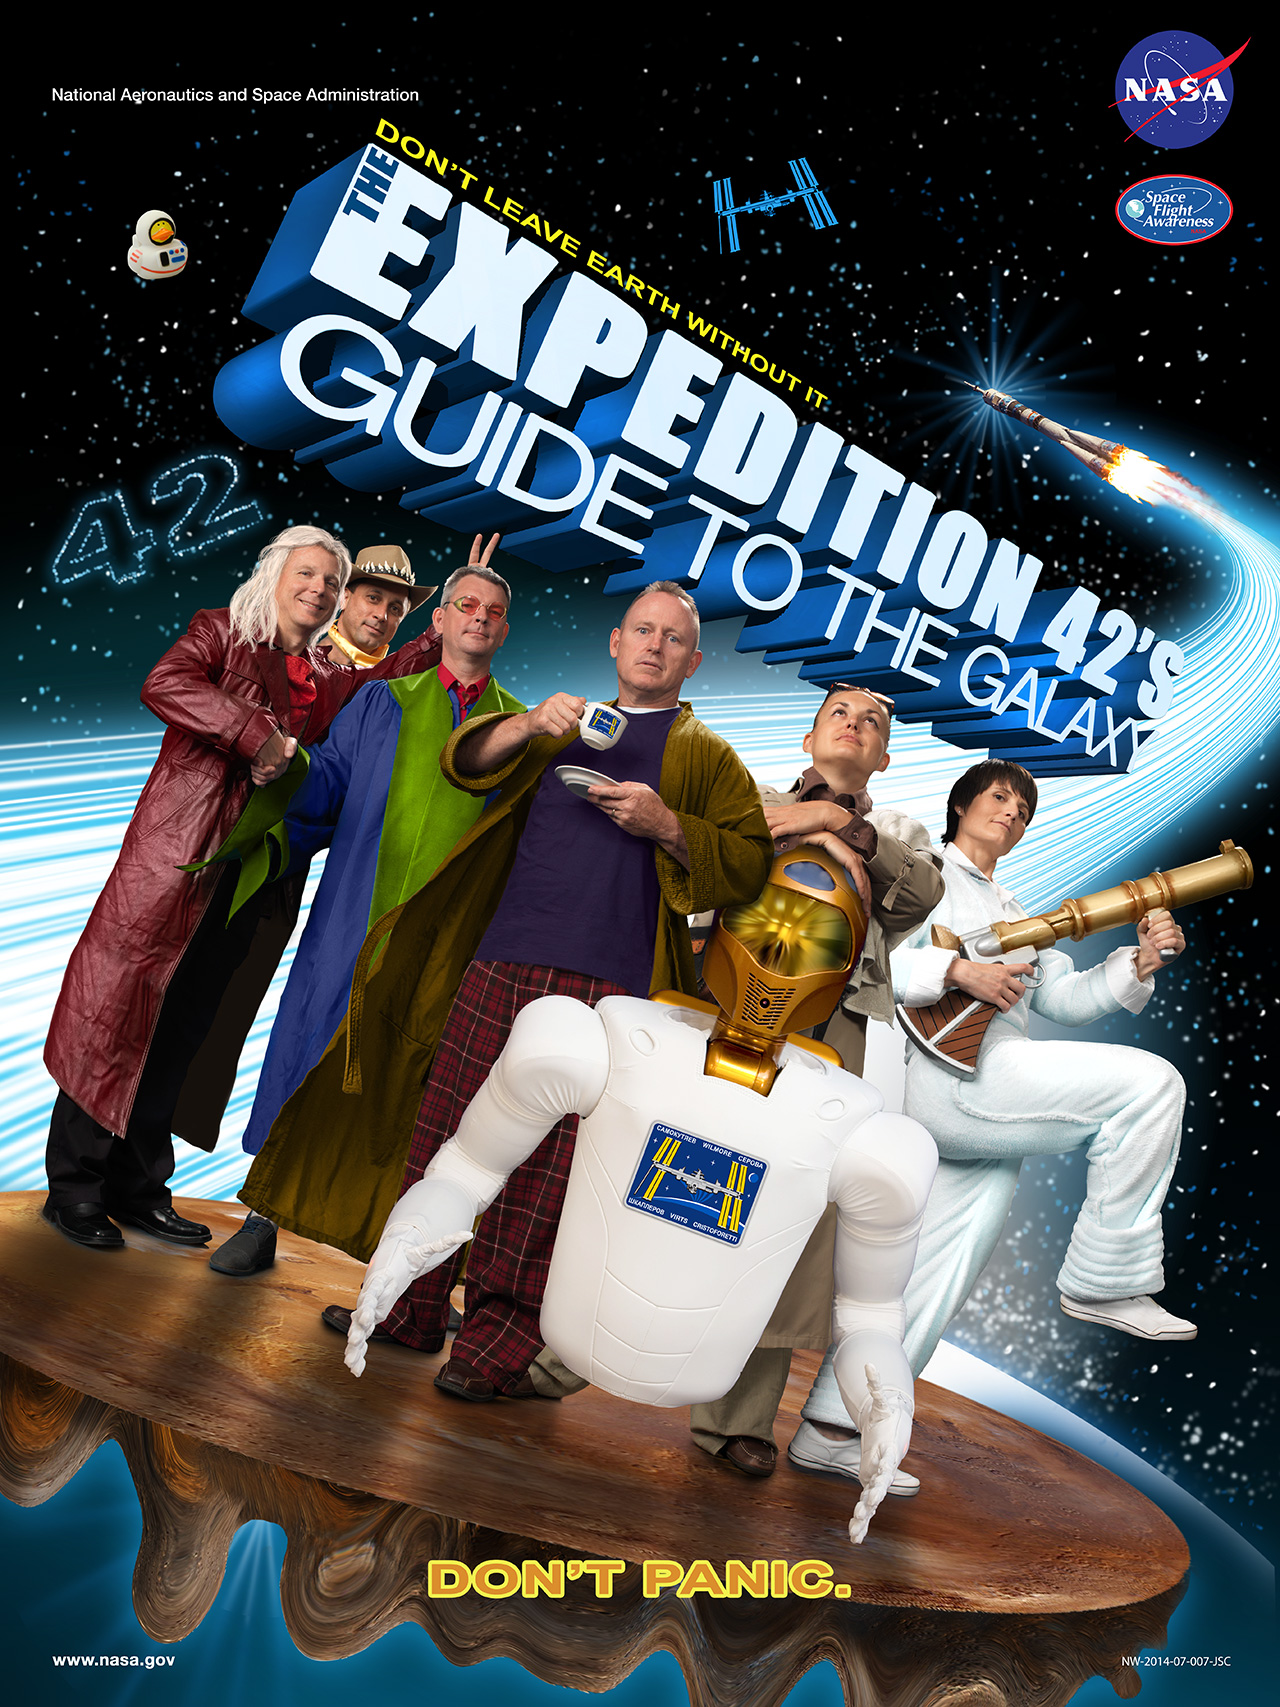 Expedition 42's theme was the Hitchhikers Guide to the Galaxy